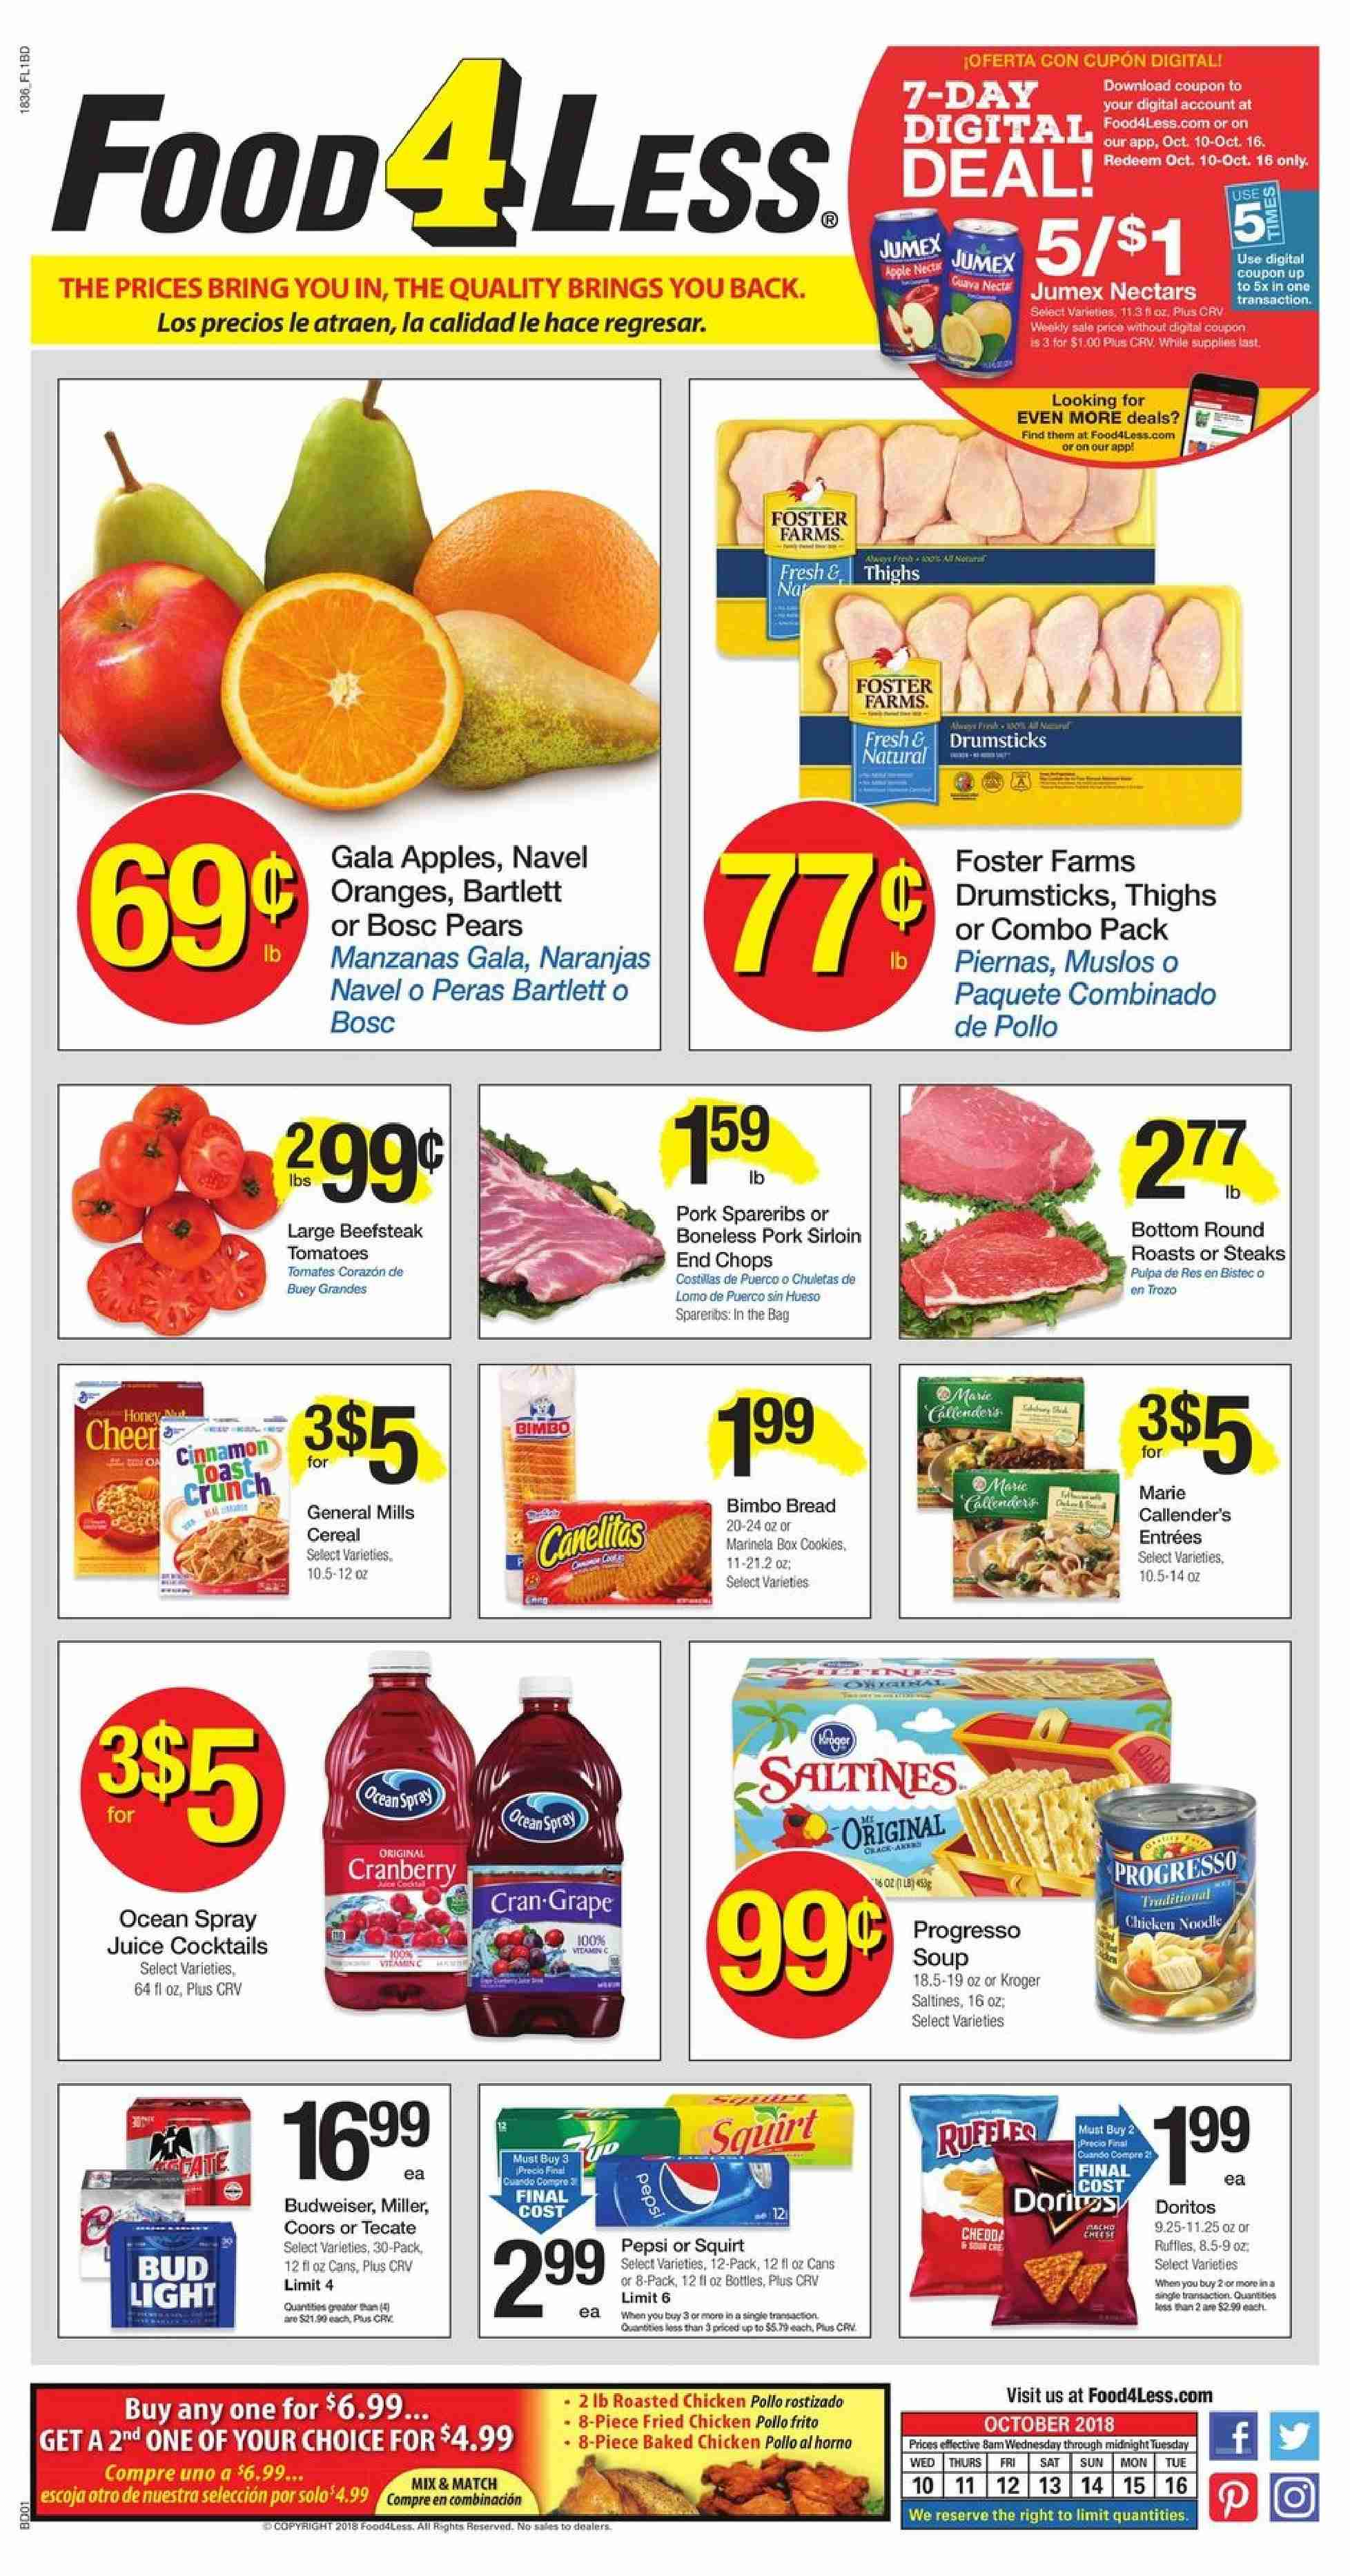 Food 4 Less Flyer - 10.10.2018 - 10.16.2018 - Sales products - Bud Light, Coors, tomatoes, Gala, pears, orange, bread, soup, fried chicken, cookies, cranberries, cereals, juice, chicken, pork meat, box. Page 1.